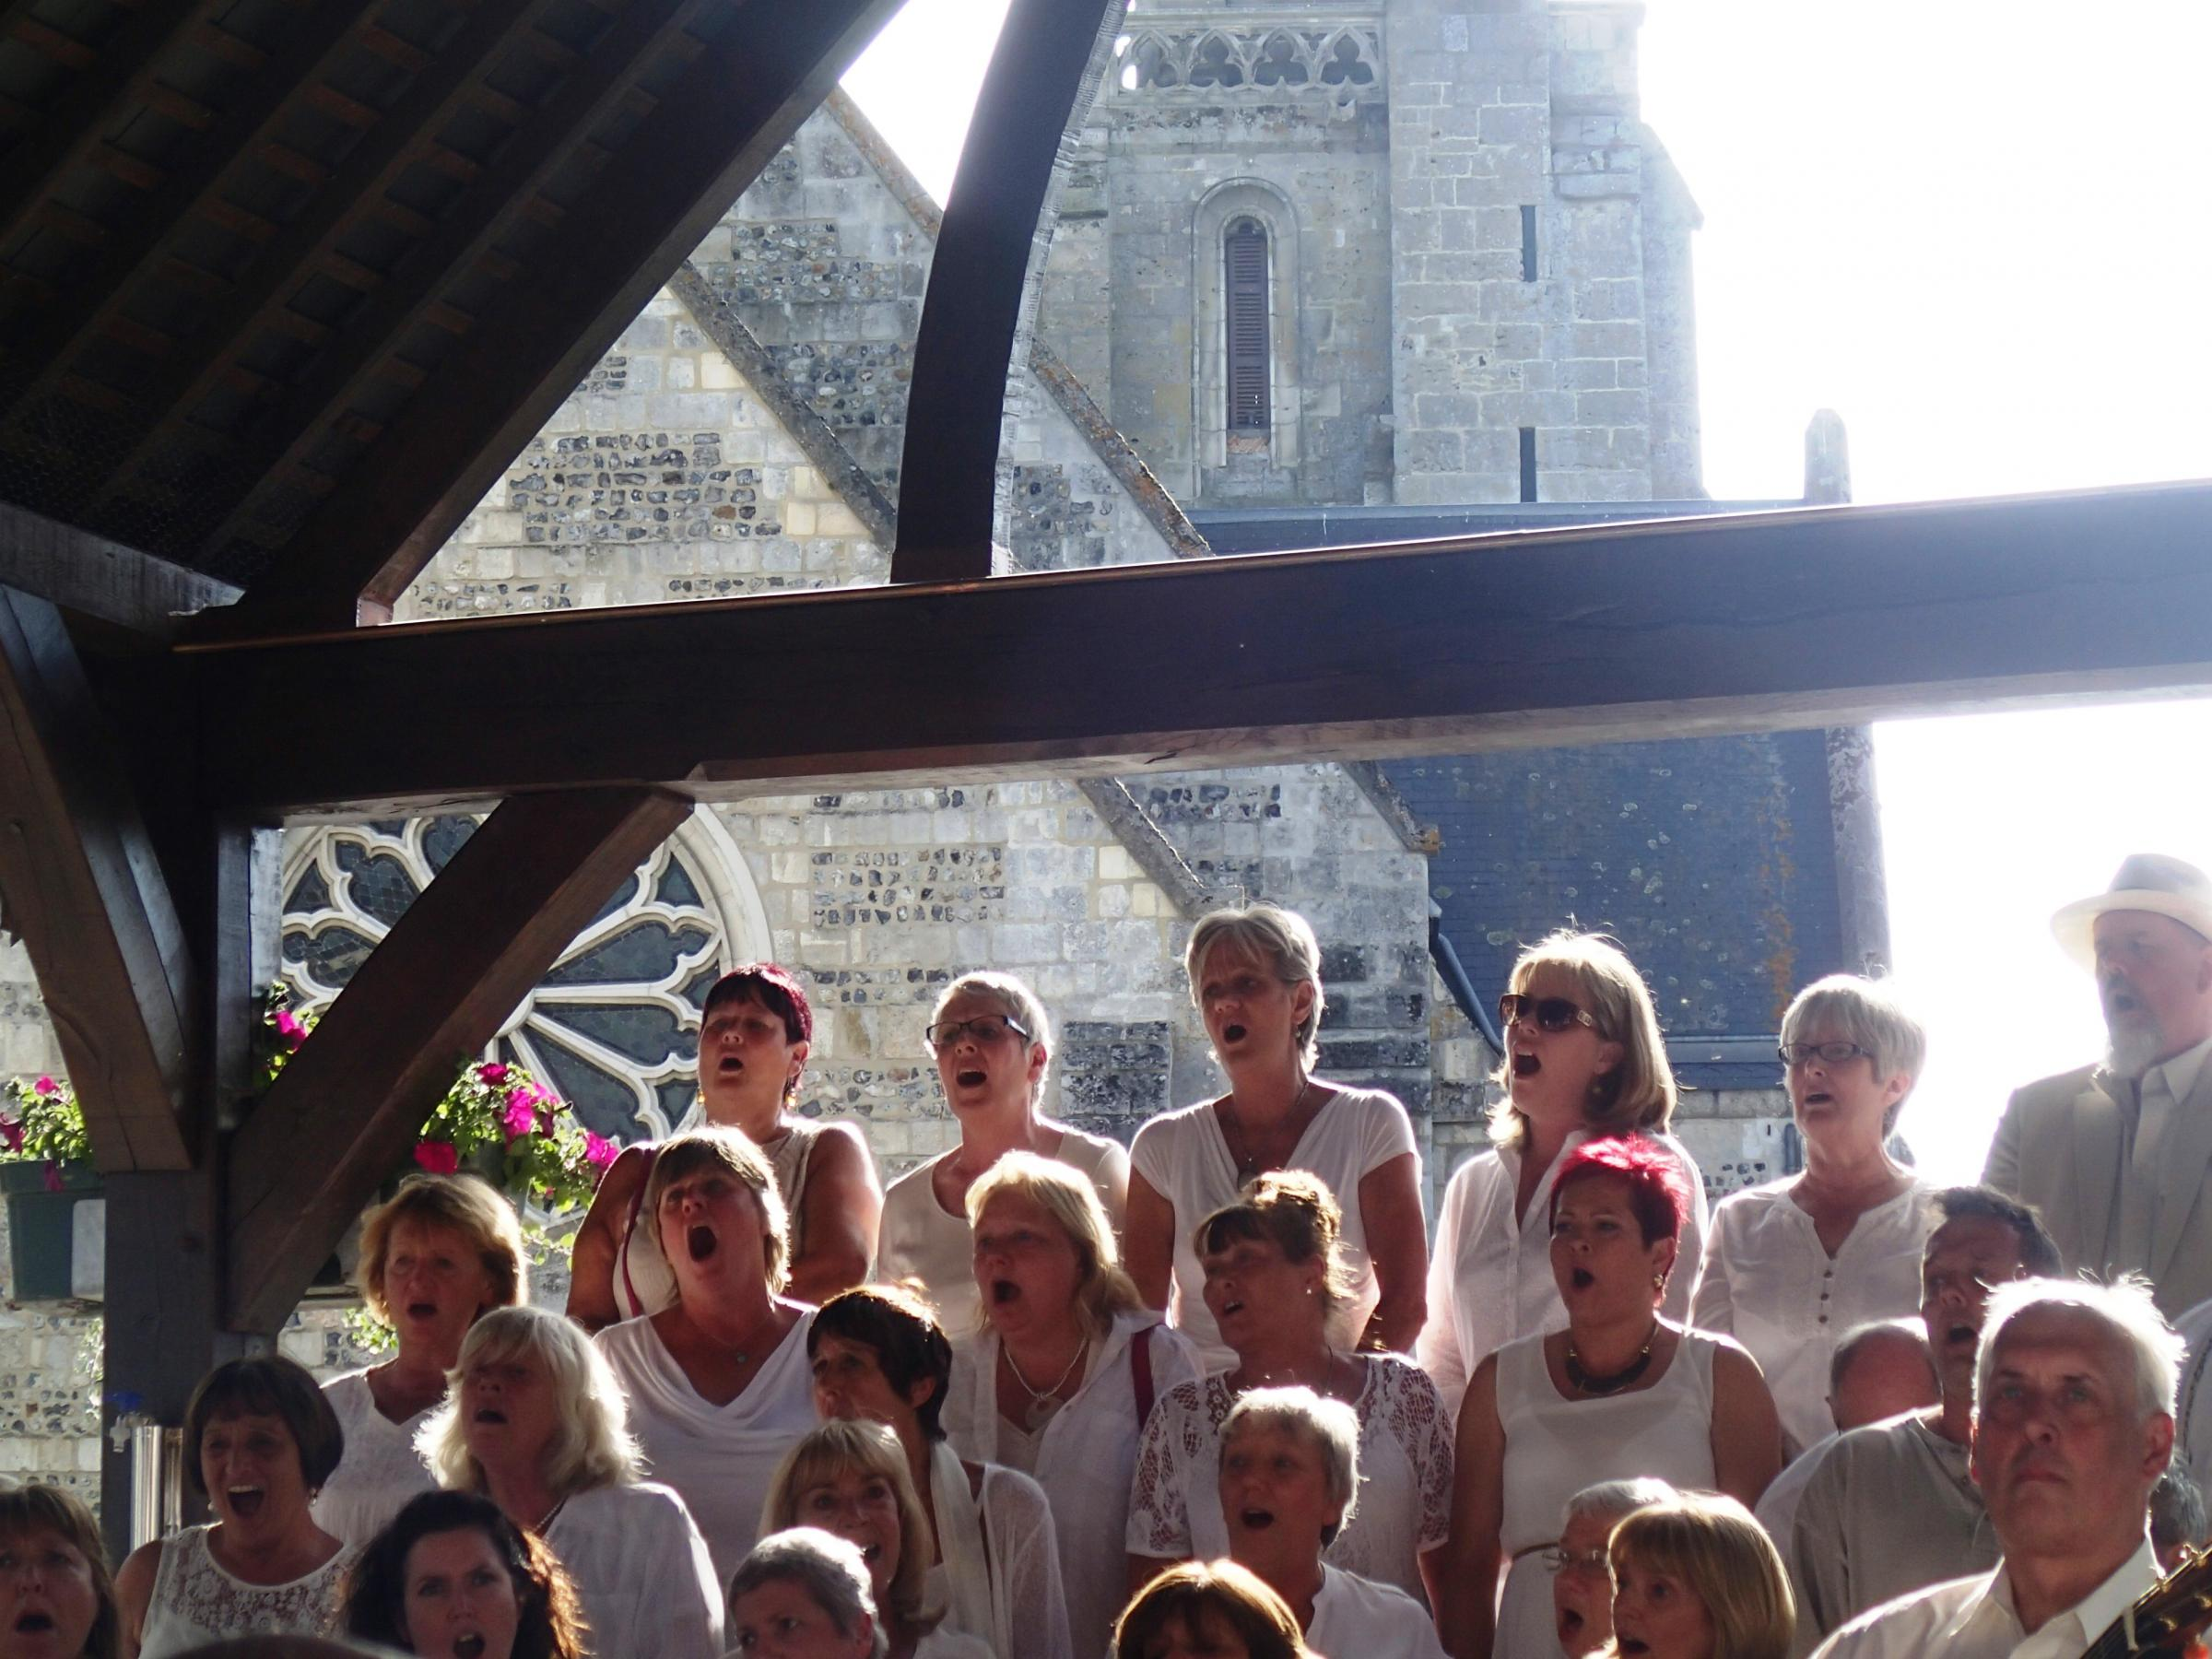 IT'S THE WEEKEND: Singing club bringing the sound of music to Monmouthshire